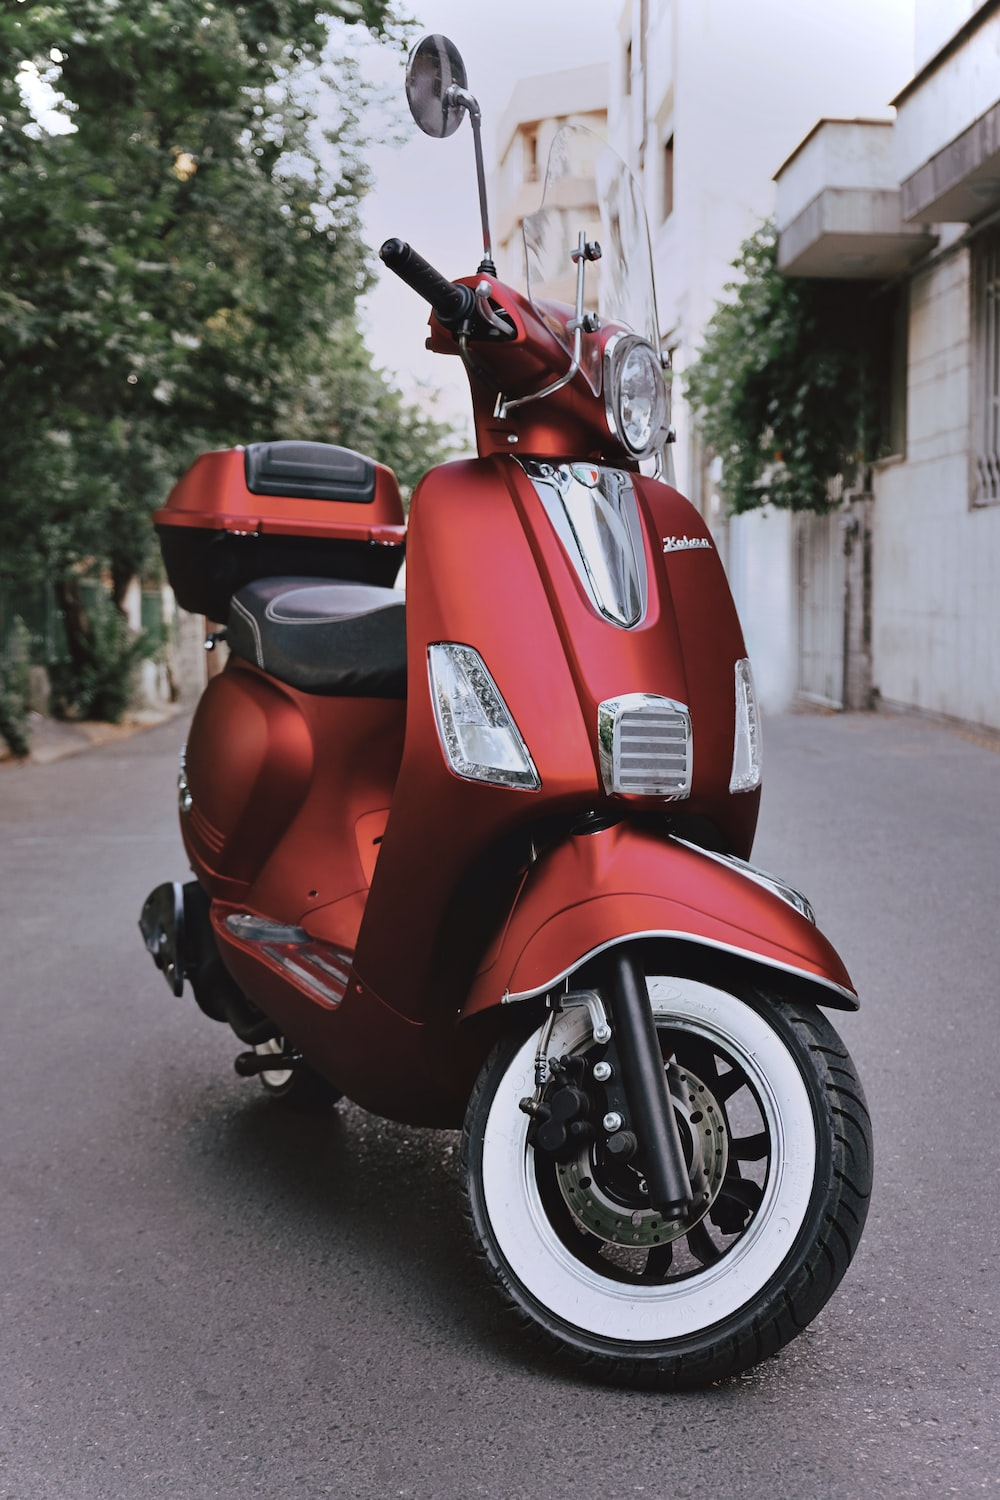 red motor scooter parked near tree and buildings